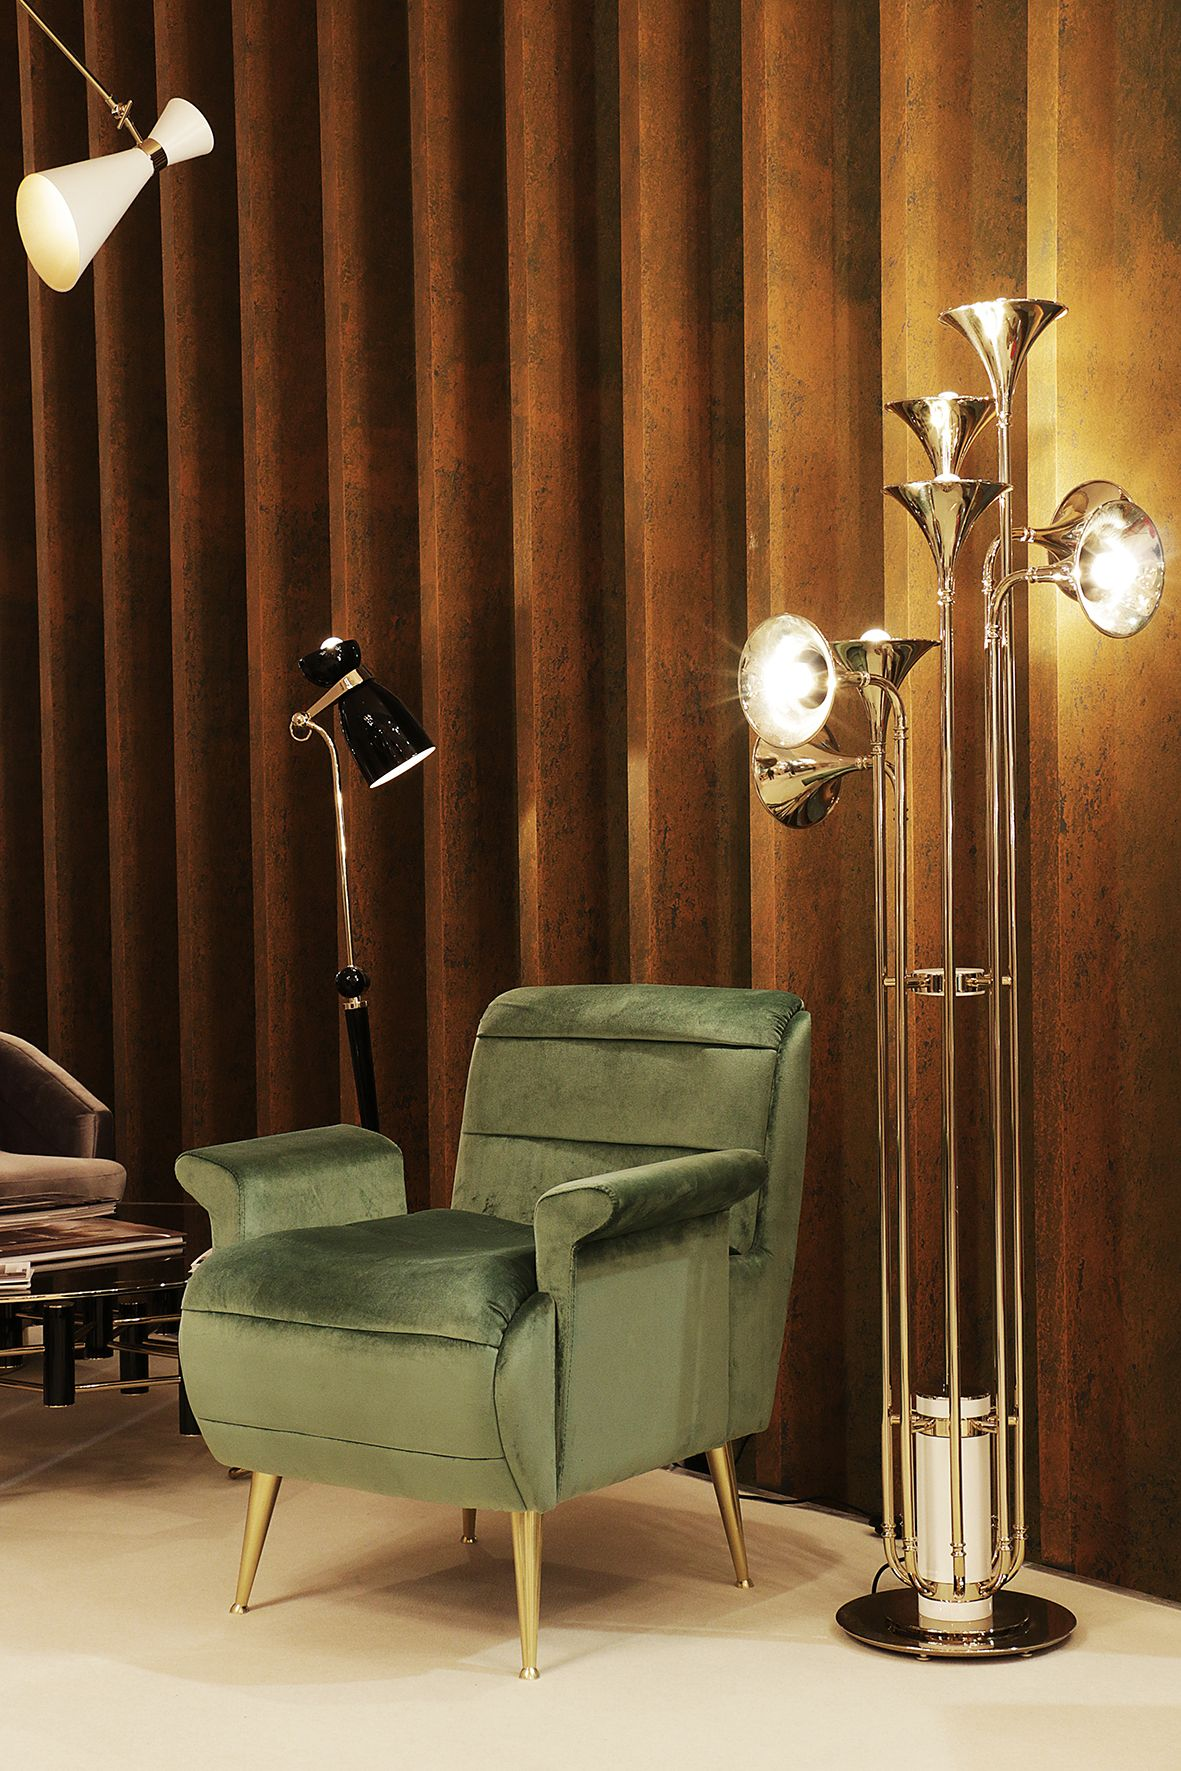 Delightfull S Botti Floor Lamp Is Also Available At The Exhibition Living Room Lighting Floor Lamp Design Contemporary Floor Lamps